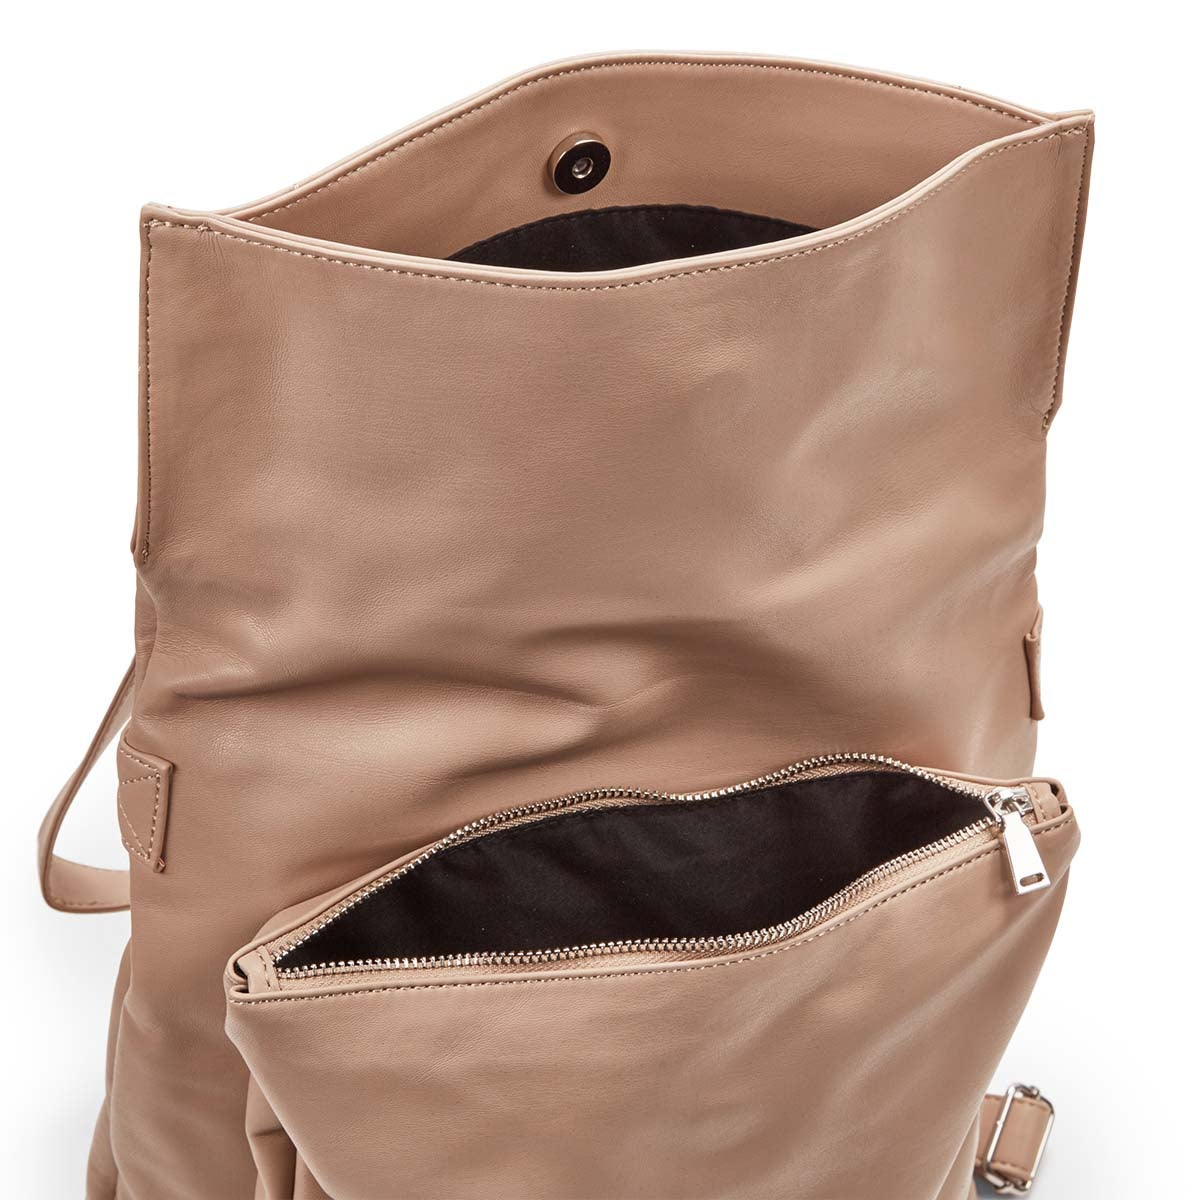 Lds Harlow Flap nude backpack